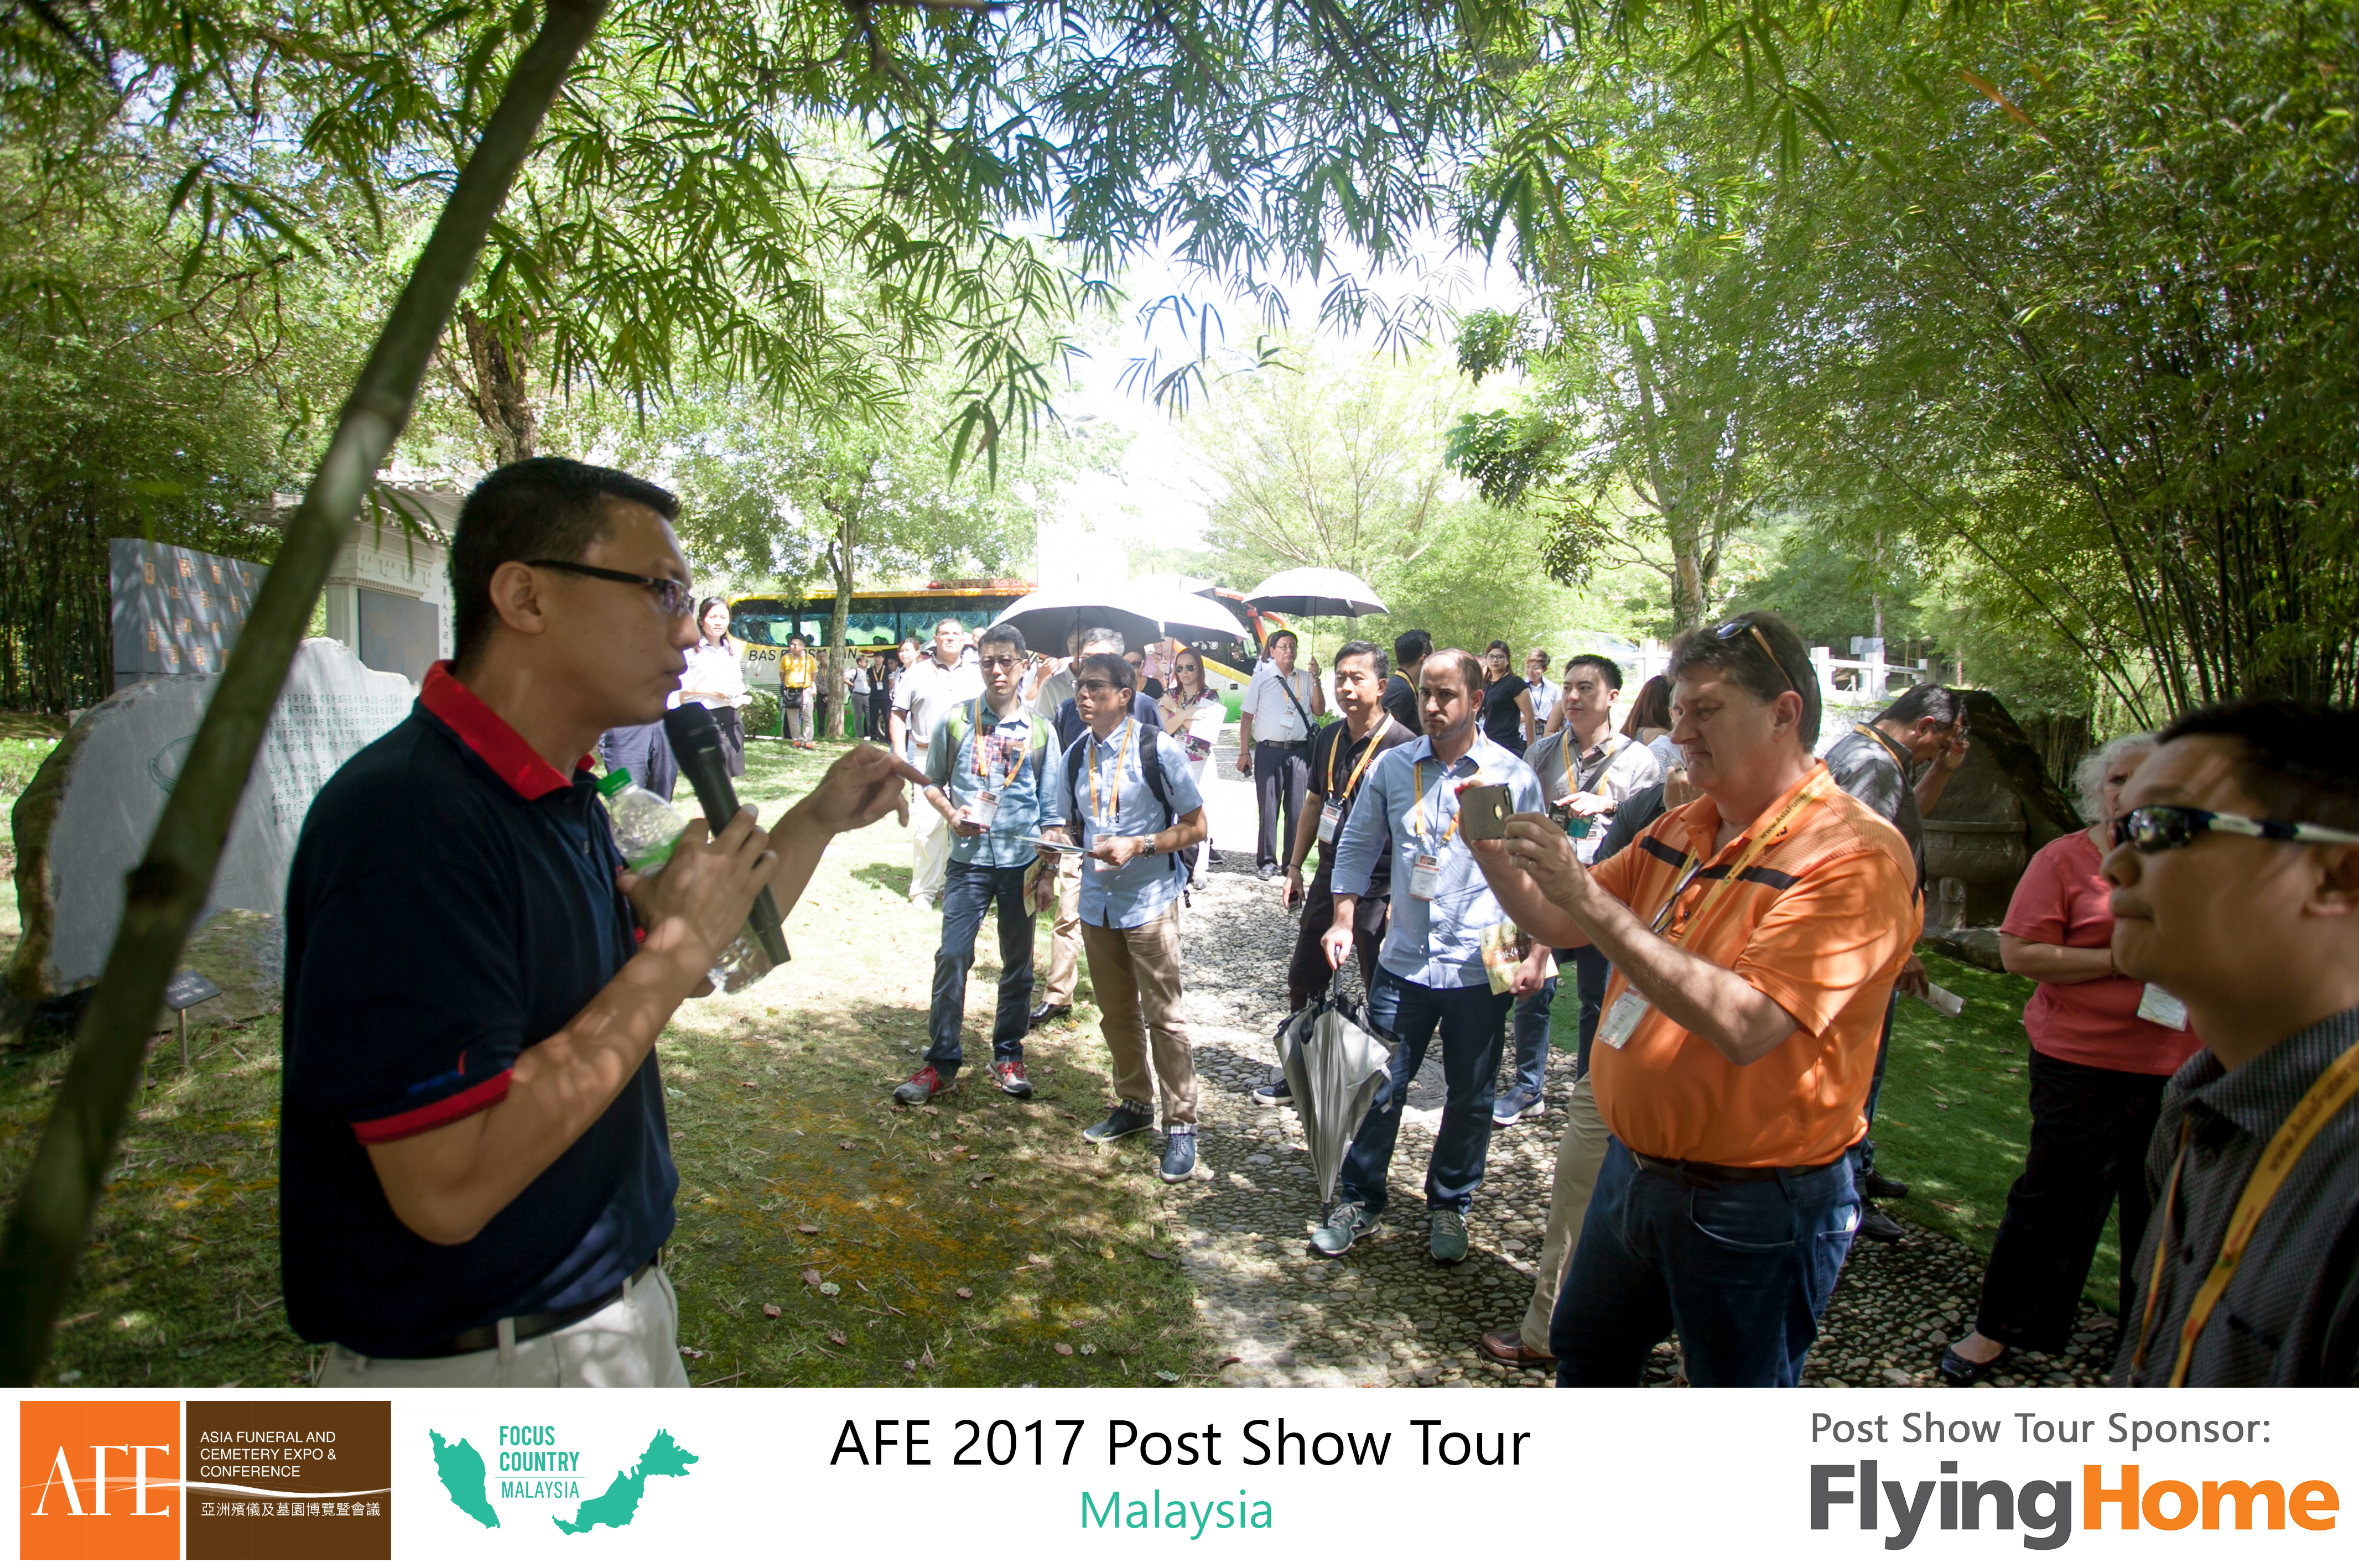 AFE Post Show Tour 2017 Day 2 - 53